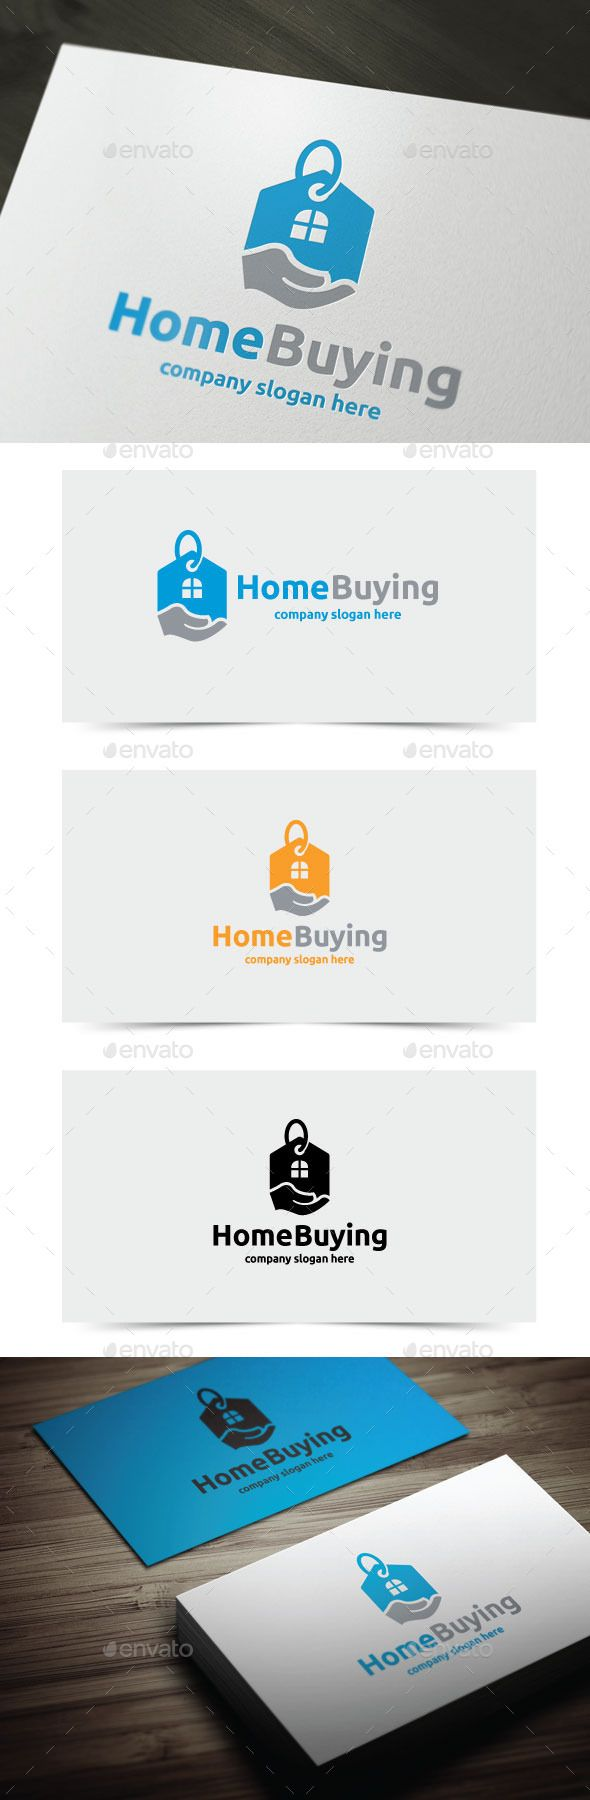 Home Buying — Photoshop PSD #legal #real estate • Available here → https://graphicriver.net/item/home-buying/10759168?ref=pxcr